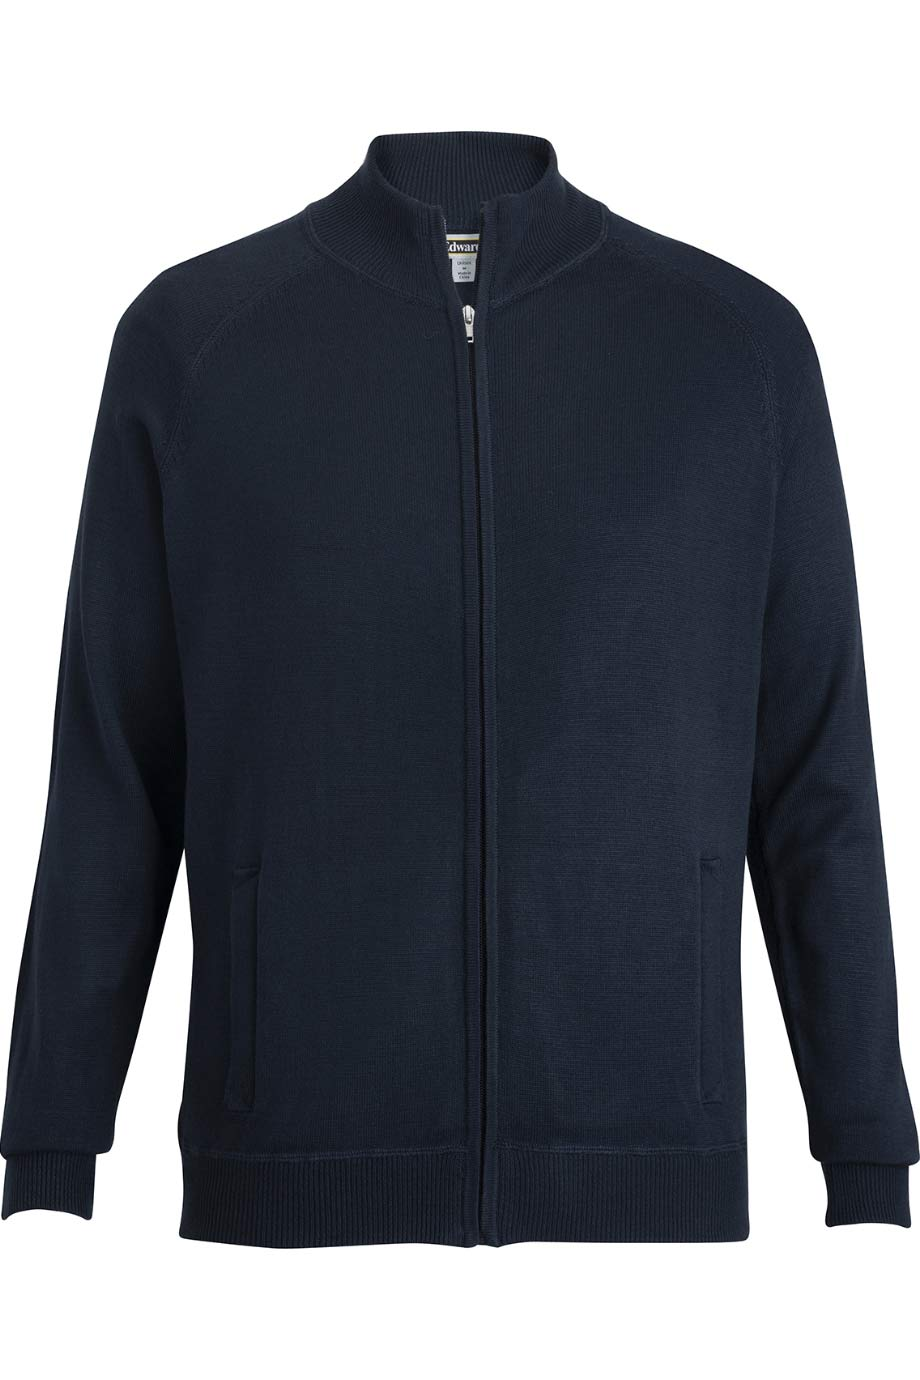 FULL-ZIP SWEATER JACKET WITH POCKETS